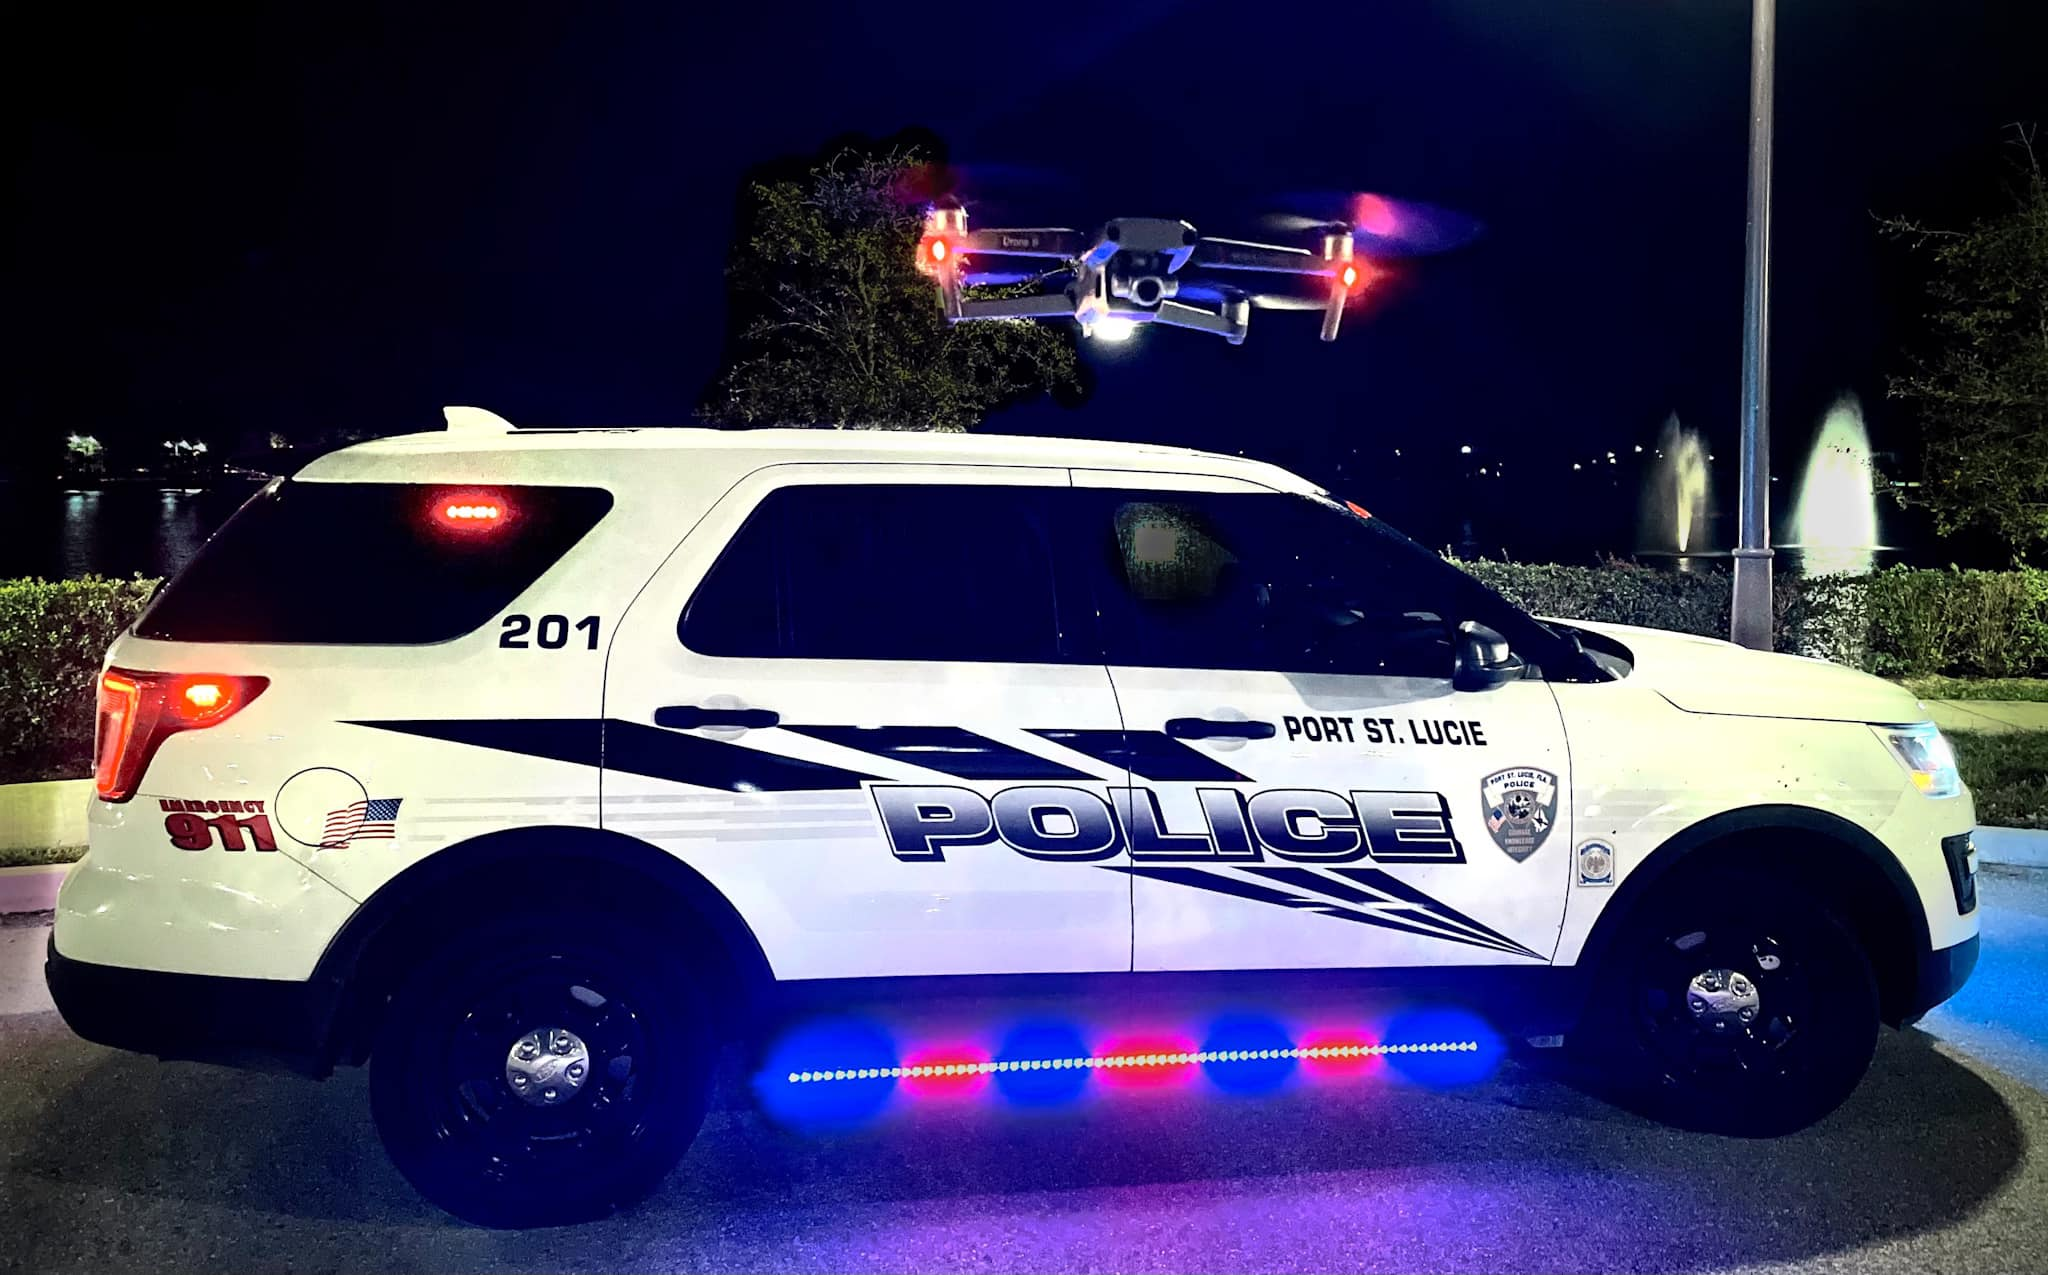 New Florida Senate bill could pave way for police drones - Police drone helps to find two young children who were missing in Florida